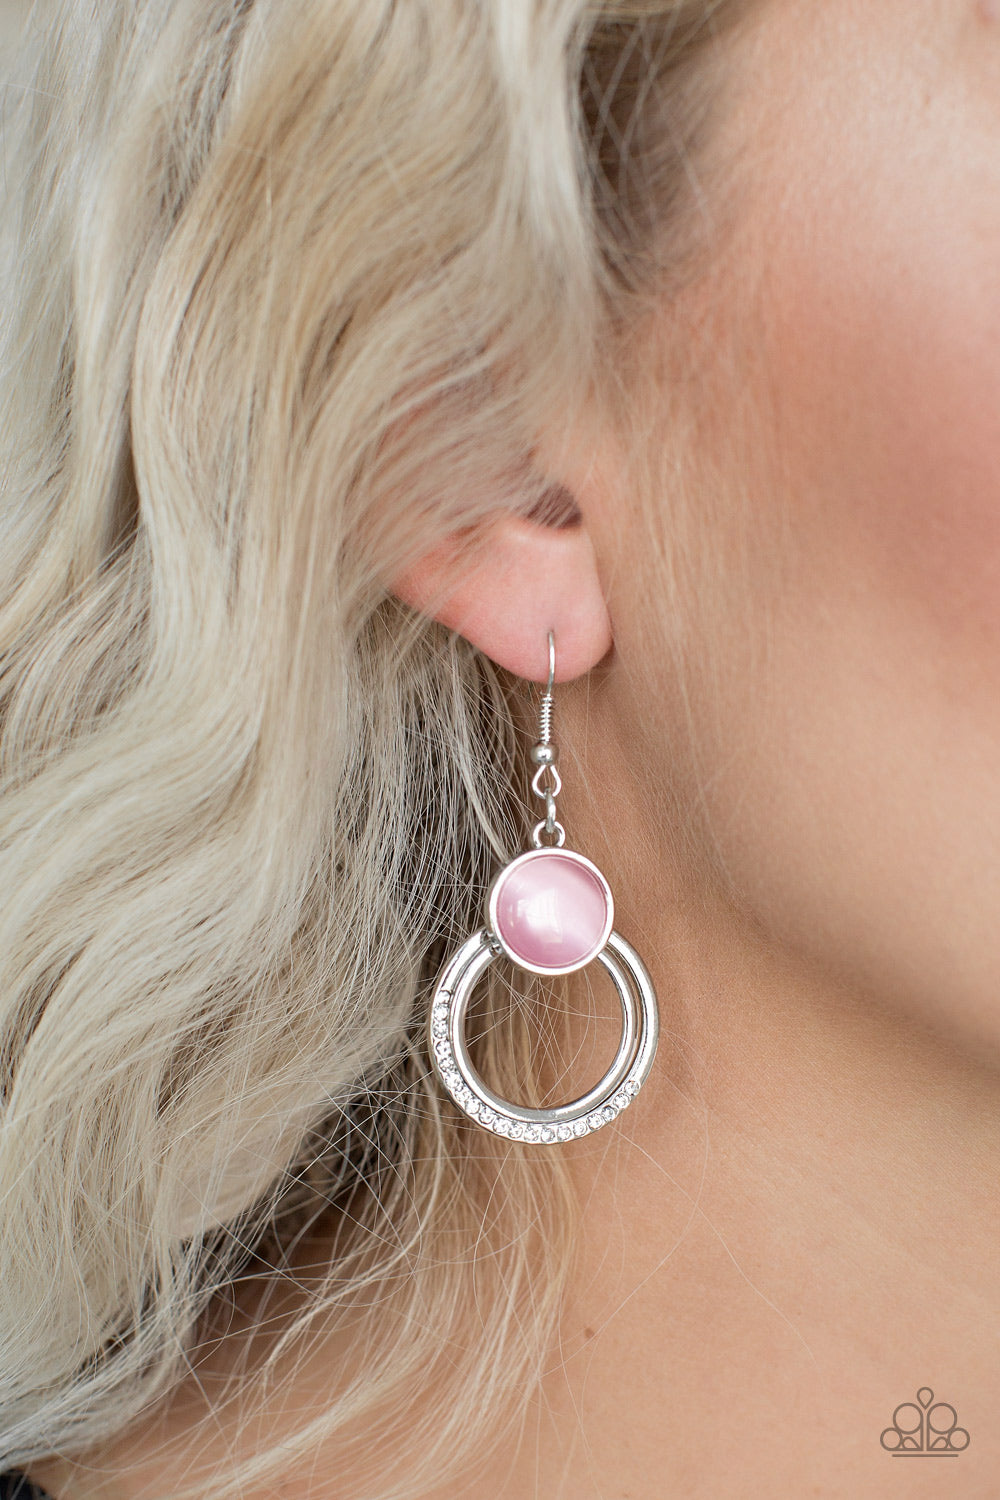 Dreamily Dreamland - Pink Earrings - SavvyChicksJewelry